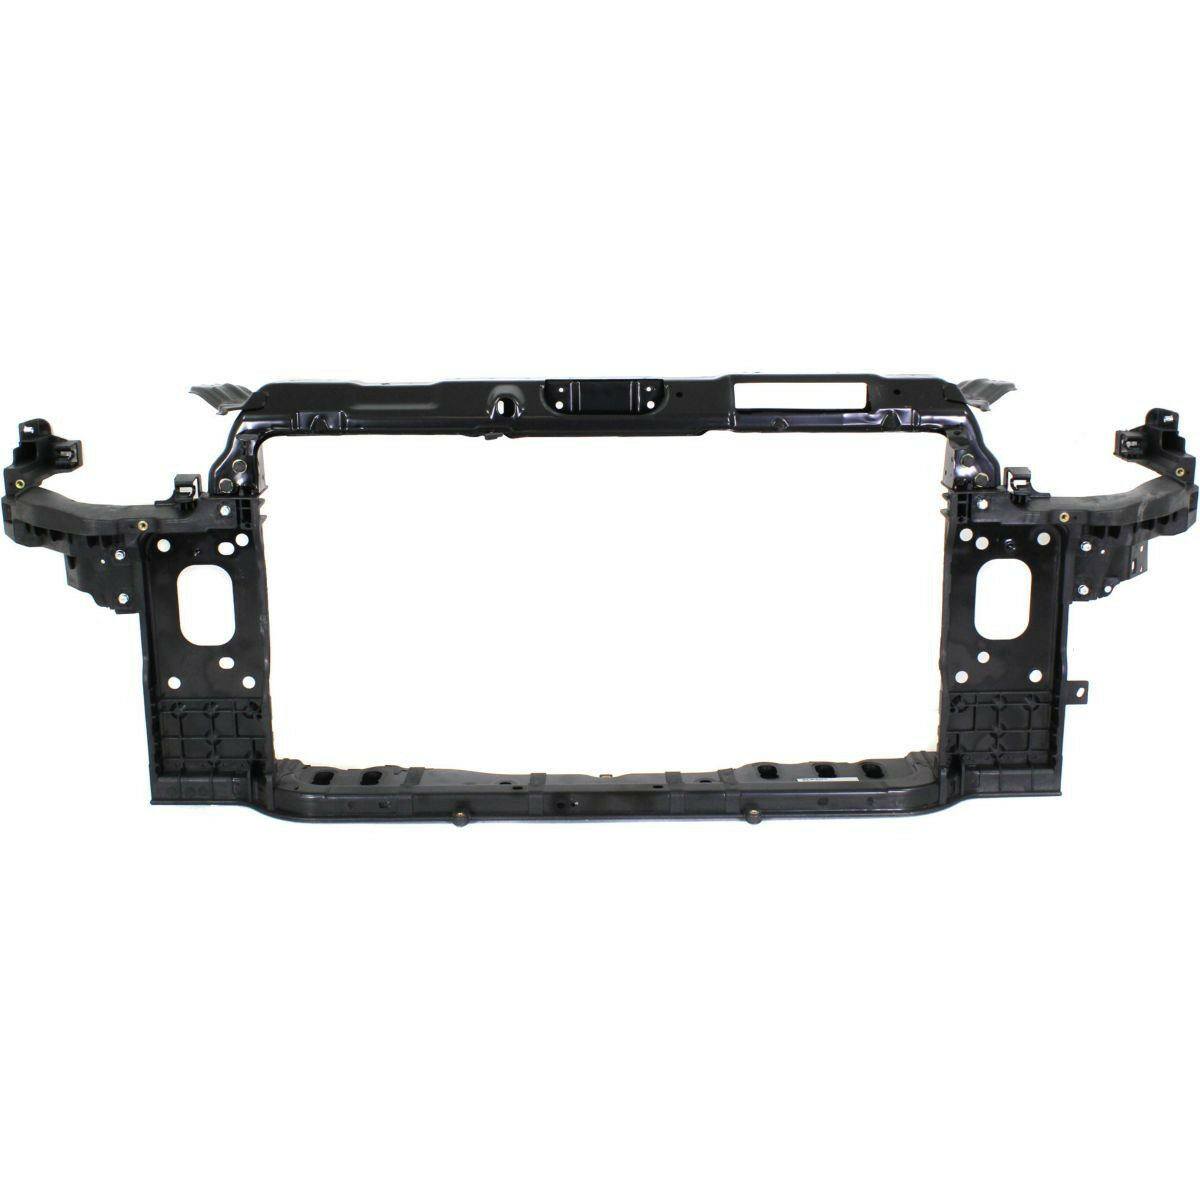 Steel Radiator Support Assembly Fits Hyundai Accent 641011R301 HY1225177